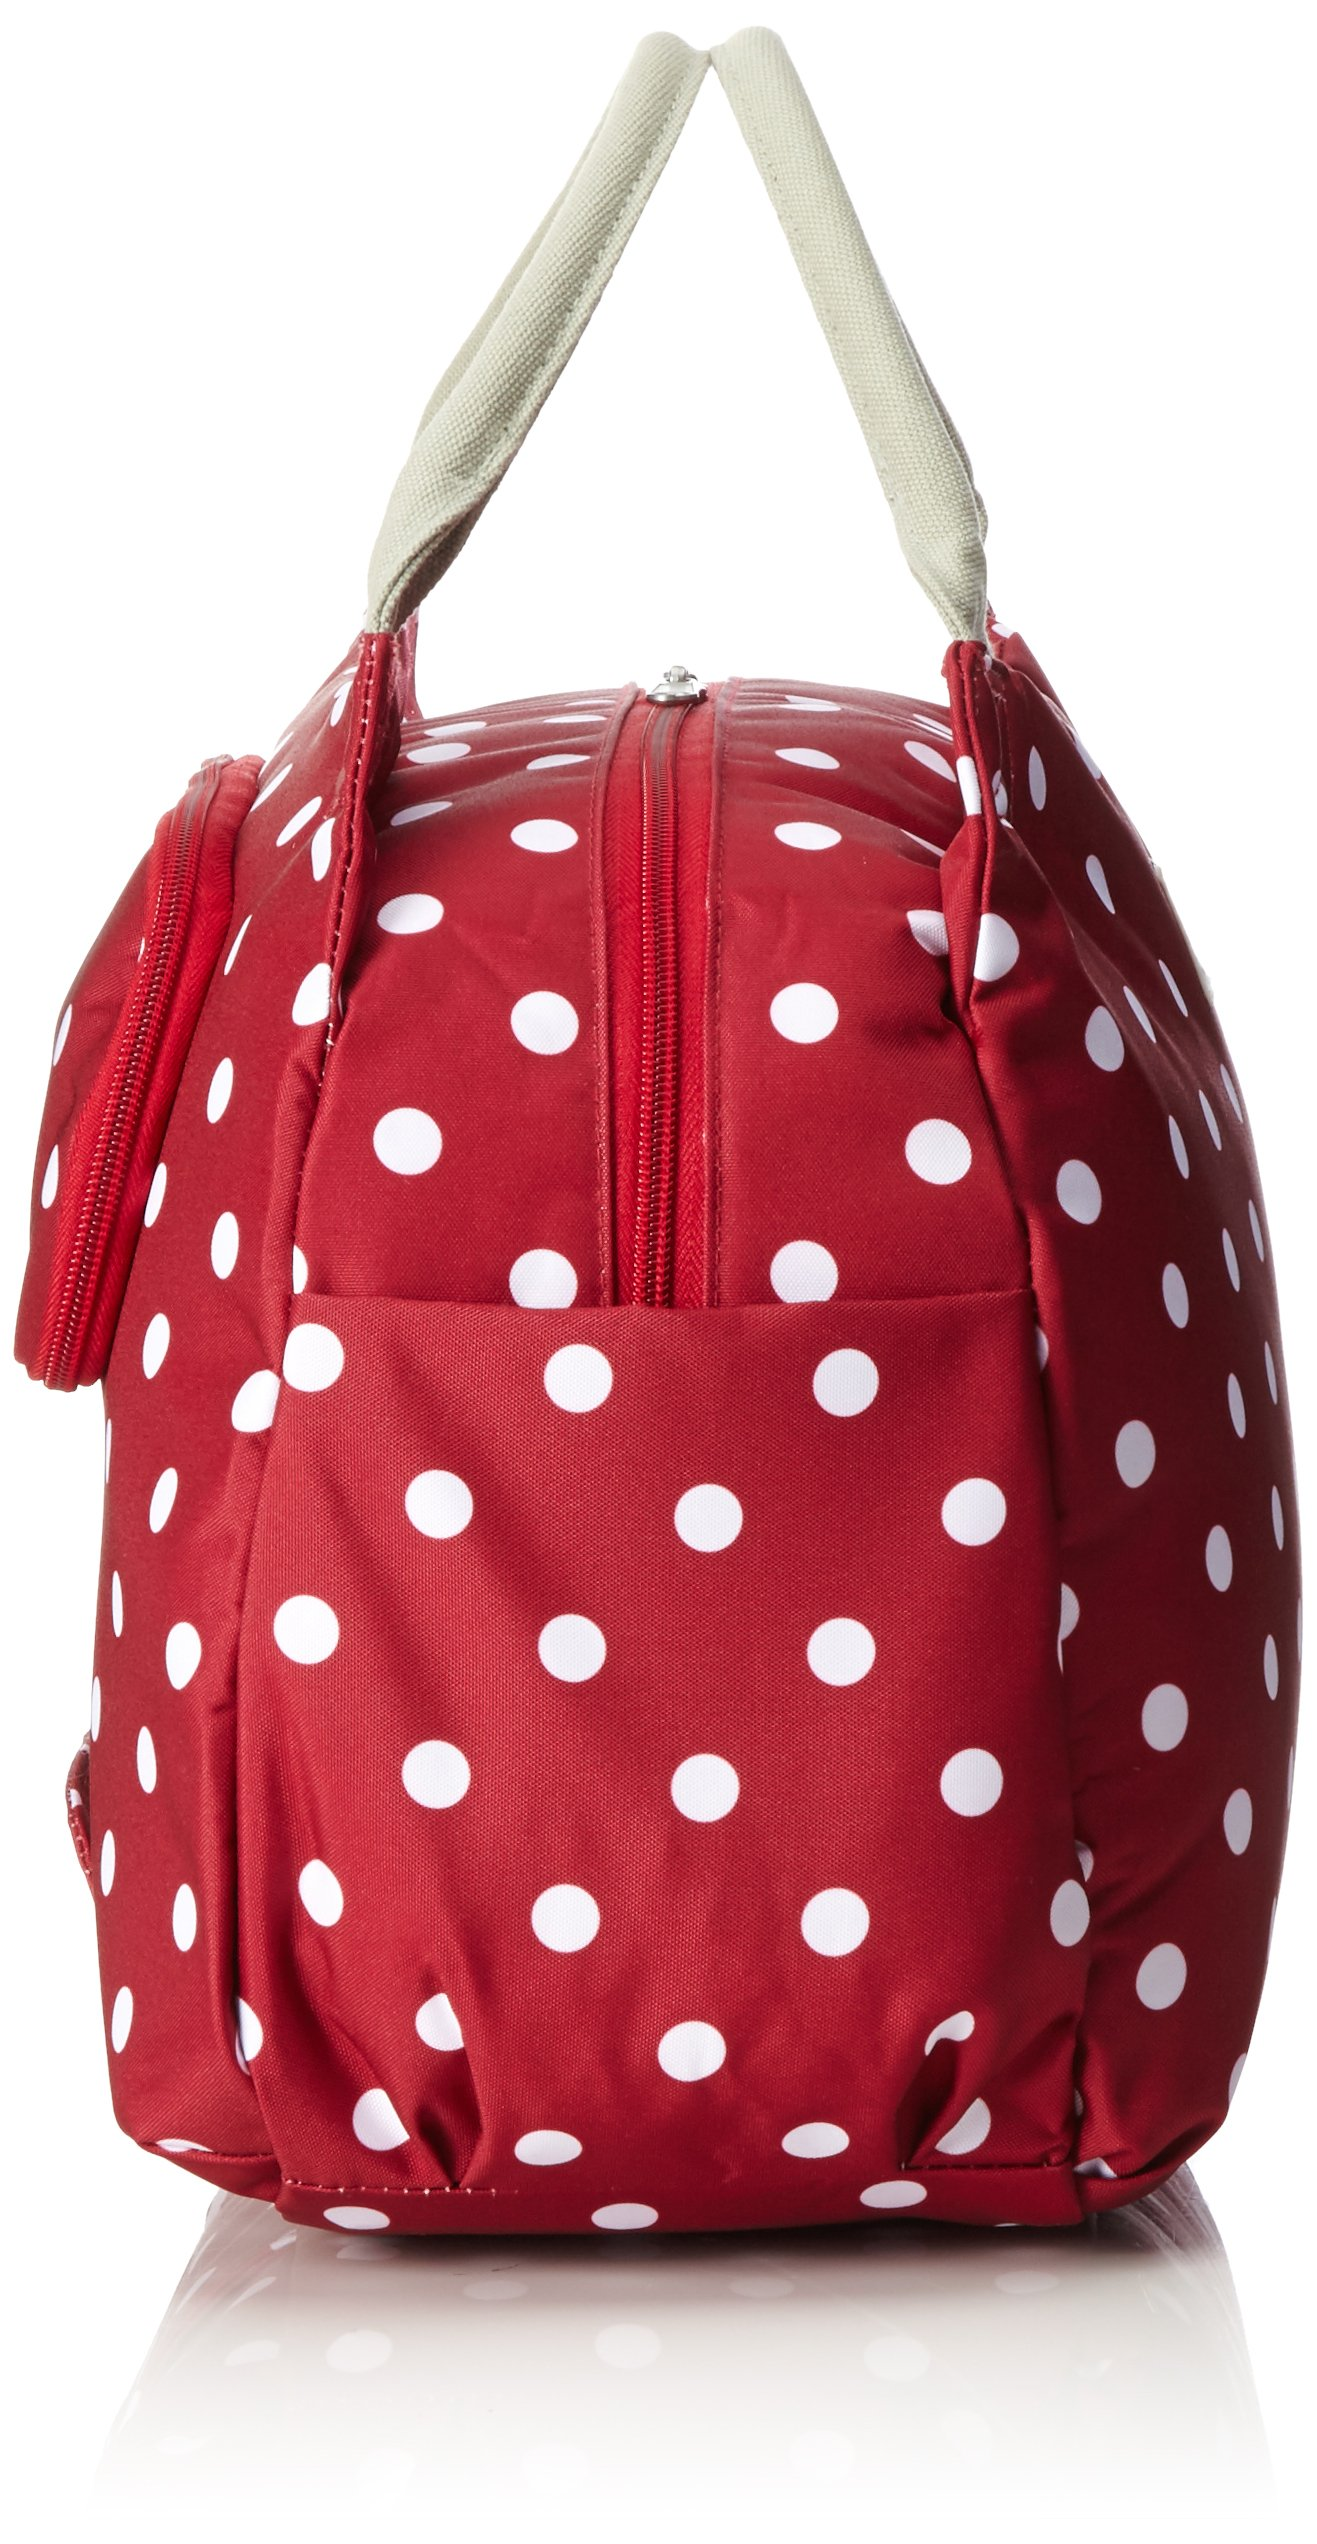 New Looxs Tosca handbag with polka dots, red [Sports] by New (Image #3)